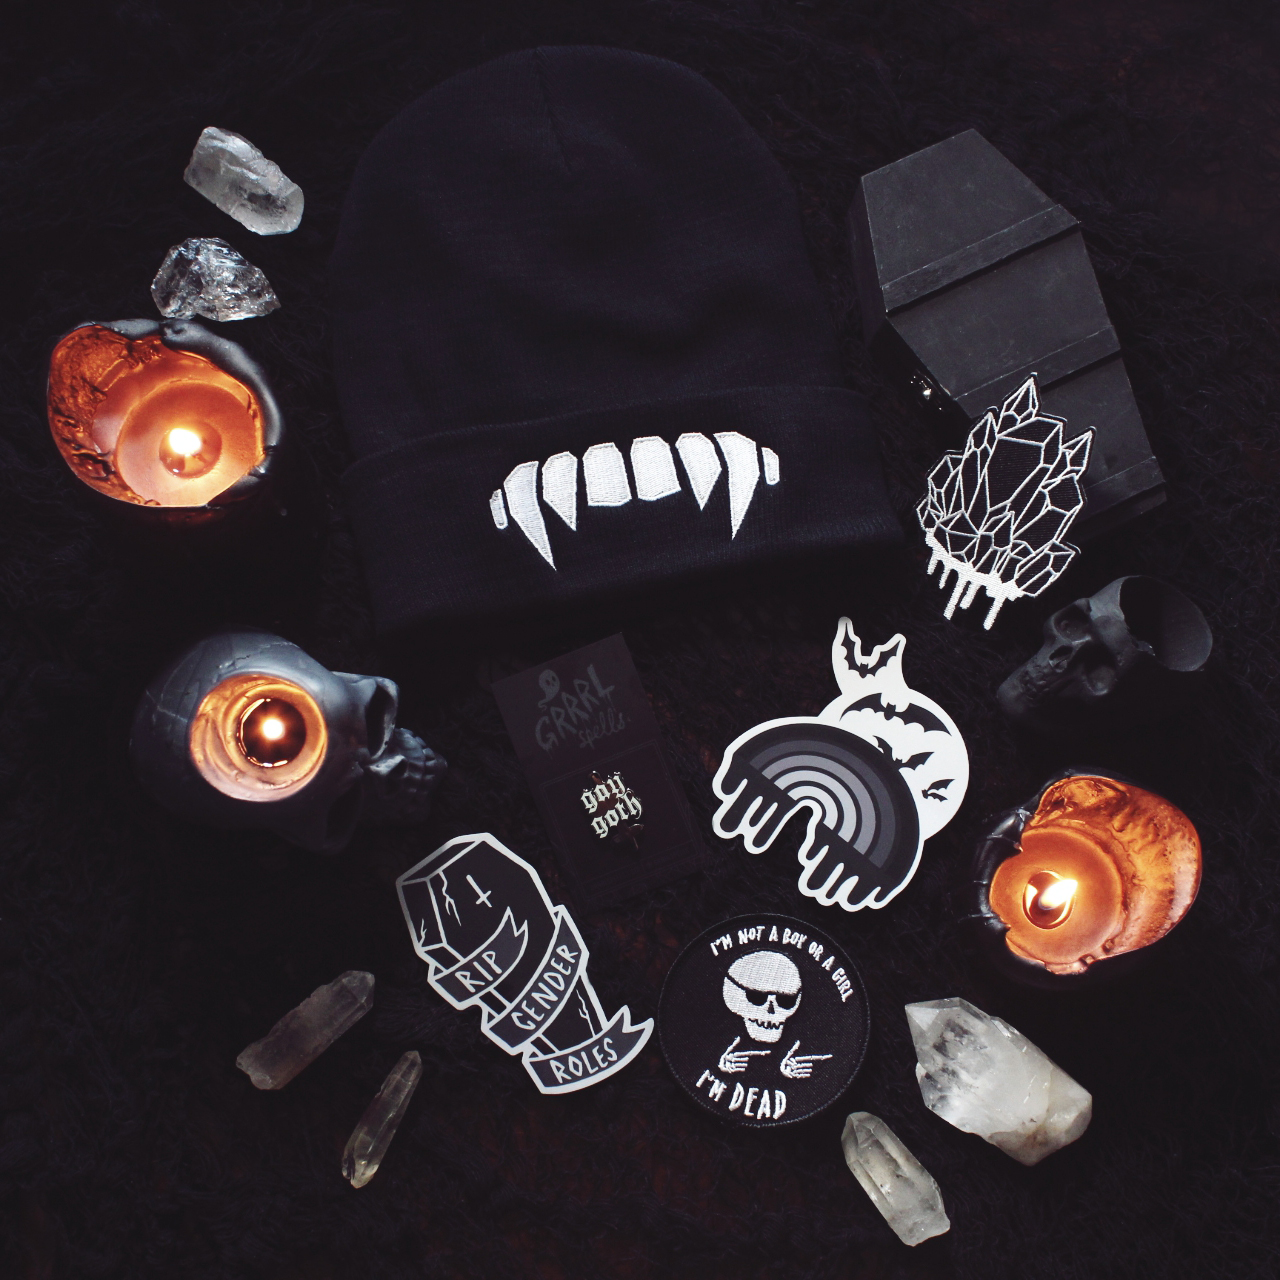 Image of crystals and lit candles around ghost and goth patches, stickers, pins and a toque